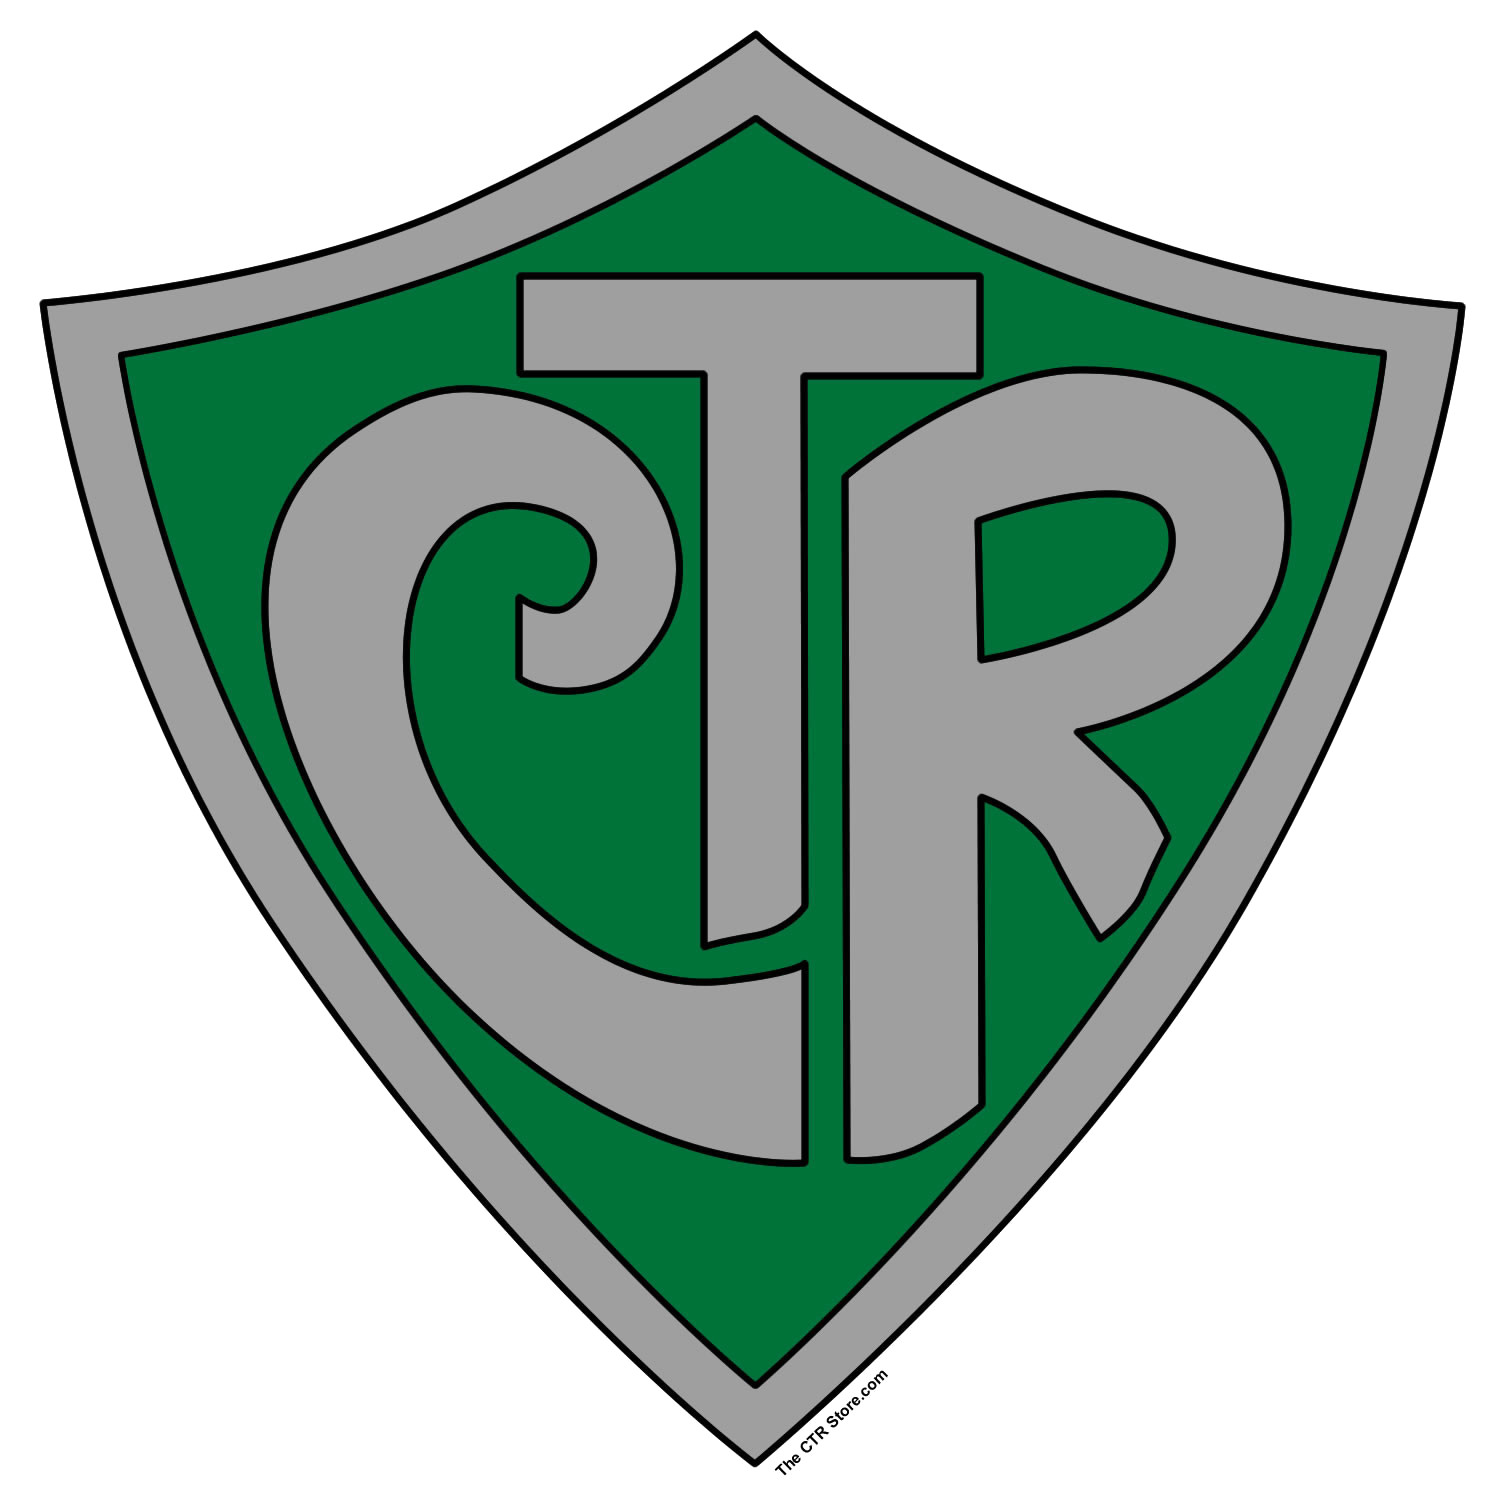 Ctr shield clipart 8 » Clipart Station.